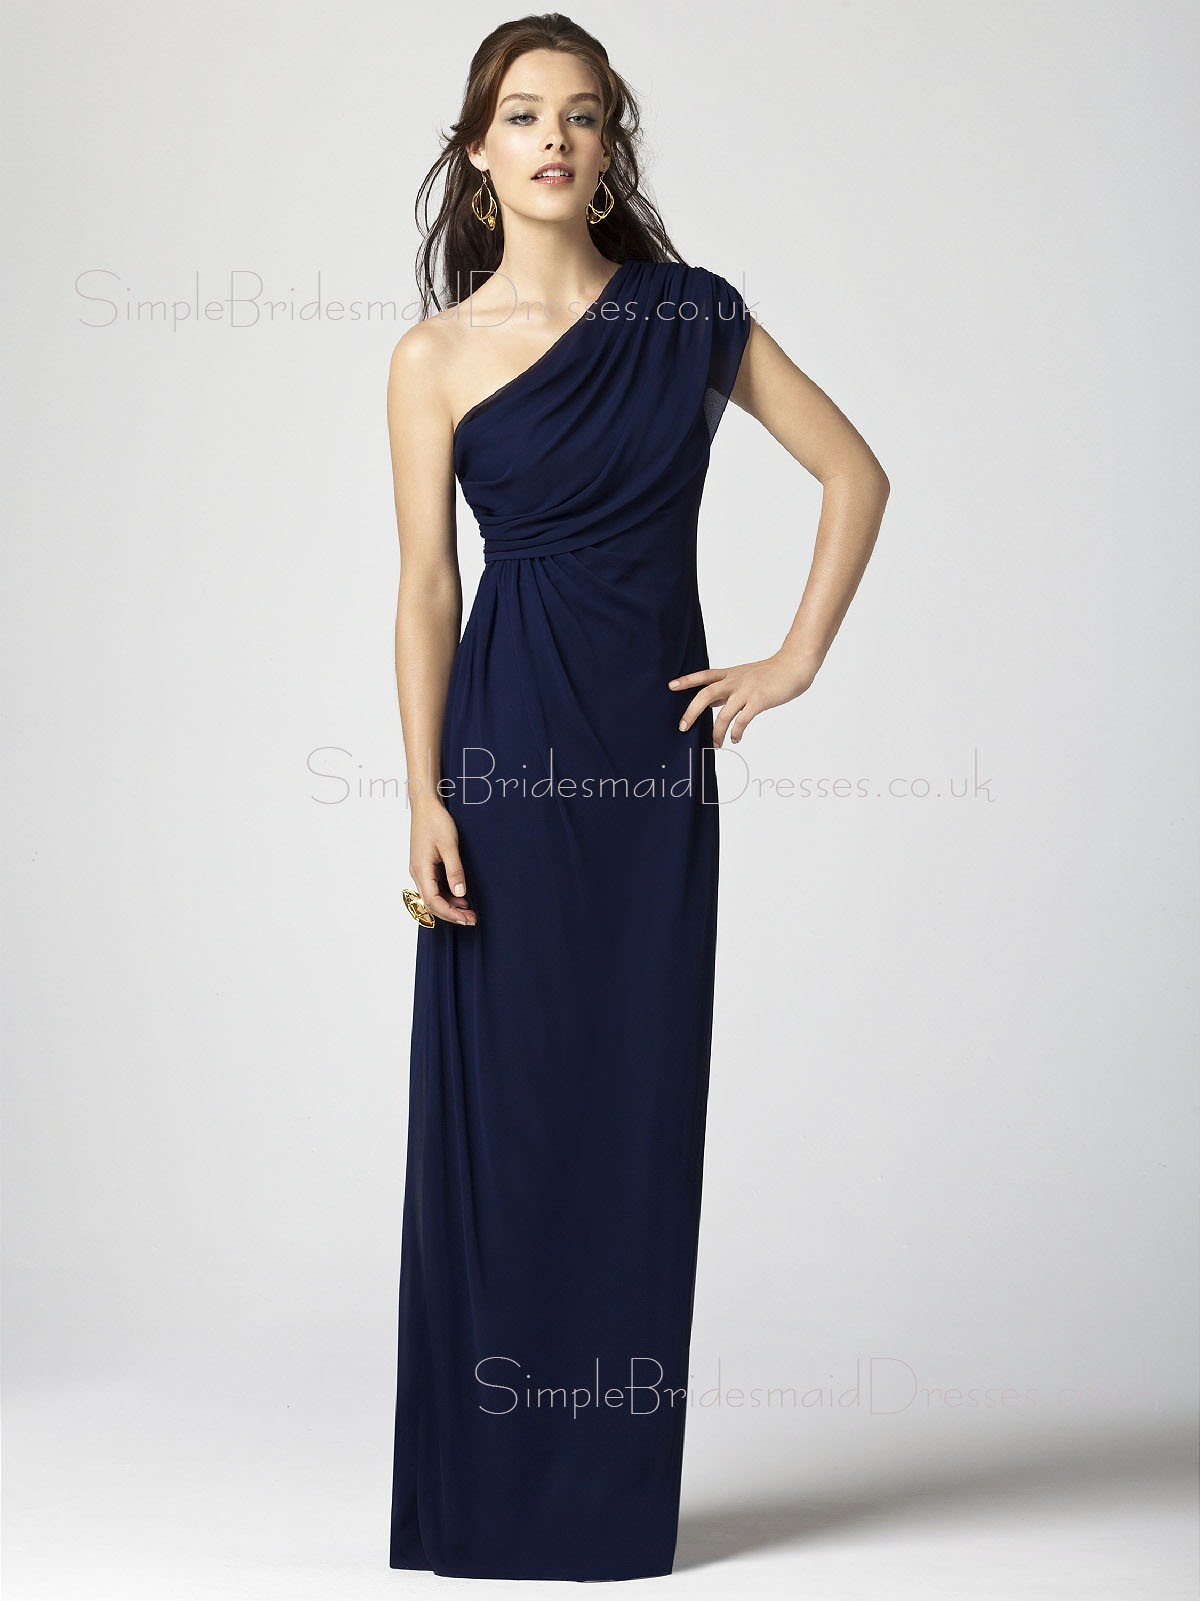 One shoulder bridesmaid dresses uk cheap one shoulder bridesmaid sheath zipper dark navy chiffon one shoulder bridesmaid dress ombrellifo Gallery